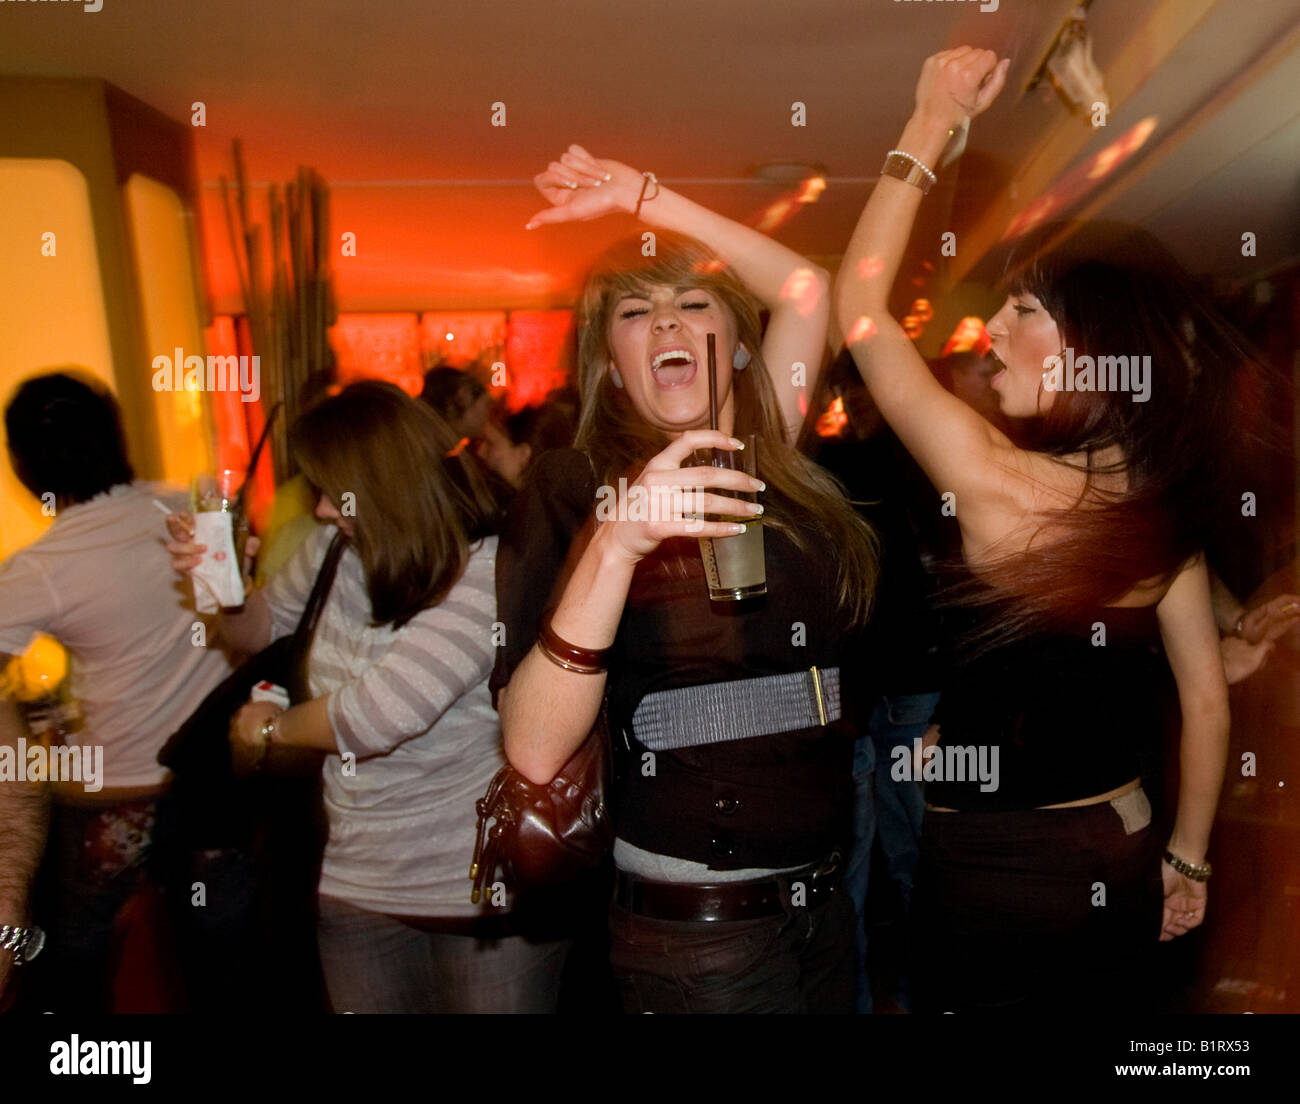 People partying in the China Lounge in the Reeperbahn red-light district, Nobistor, Sankt Pauli, Hamburg, Germany - Stock Image